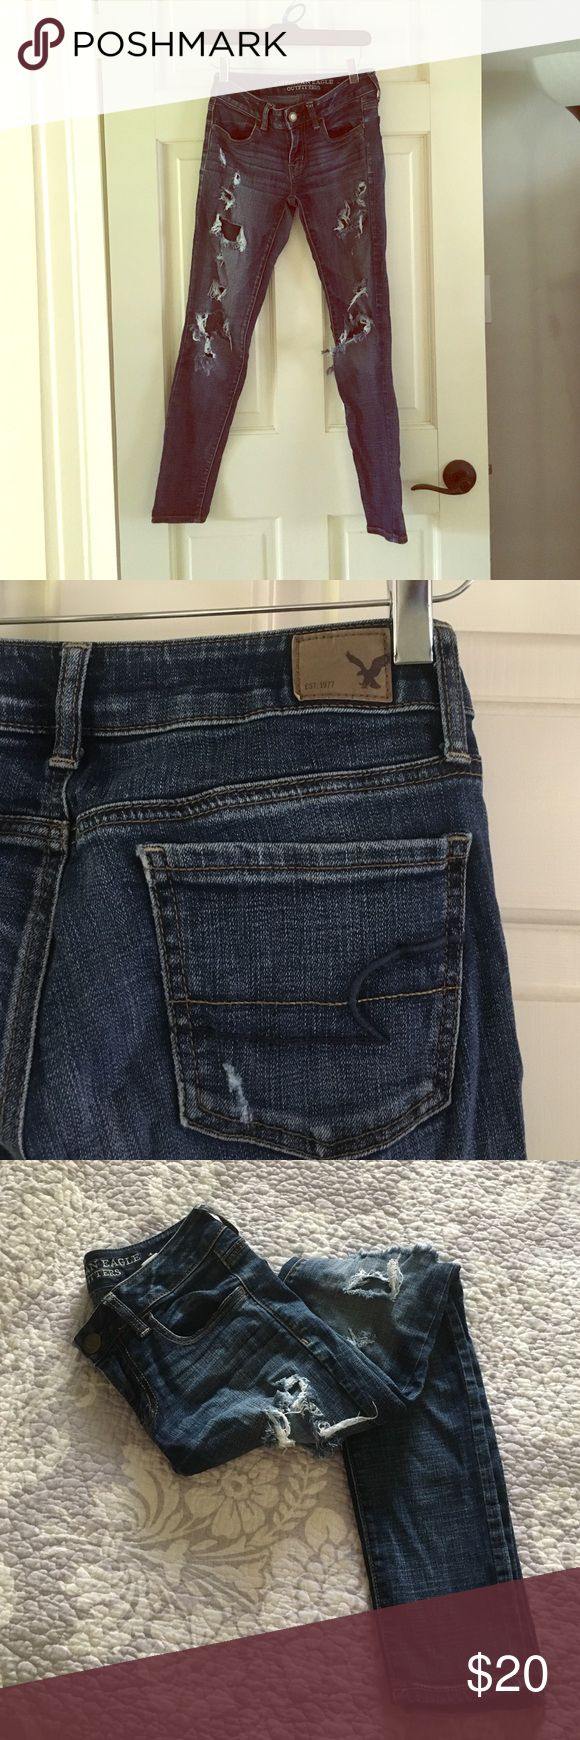 American eagle destroyed jeans Stretch denim destroyed skinny jeans American Eagle Outfitters Jeans Skinny